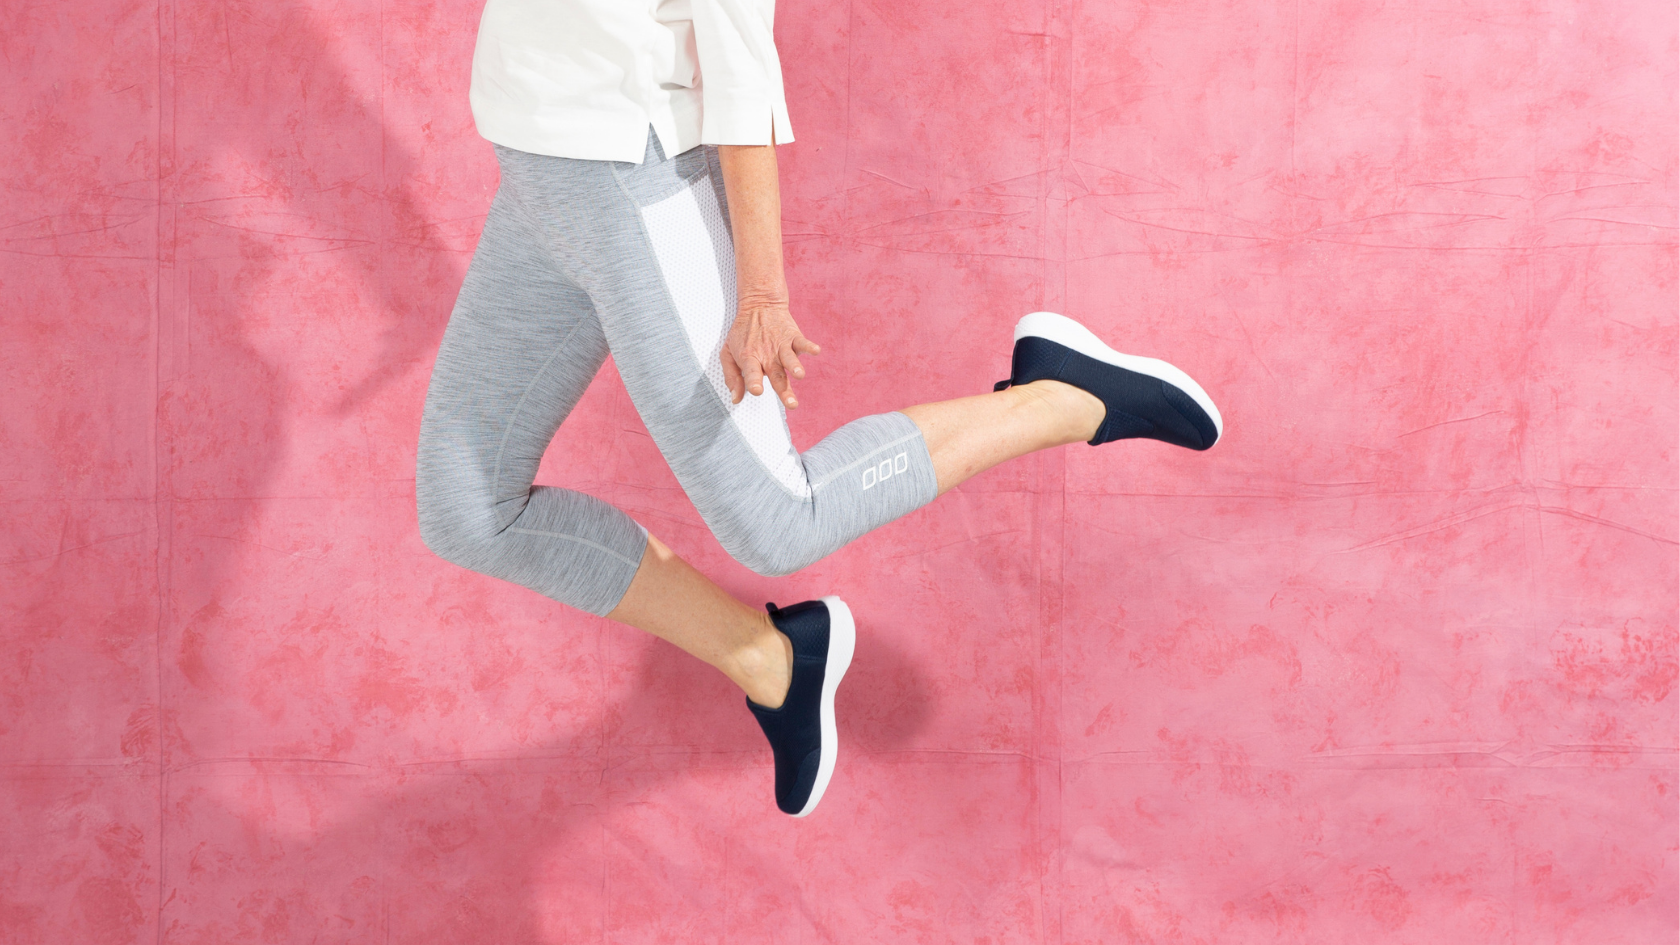 Snap shot of a woman jumping up in front of a pink background wearing slip on sneakers.